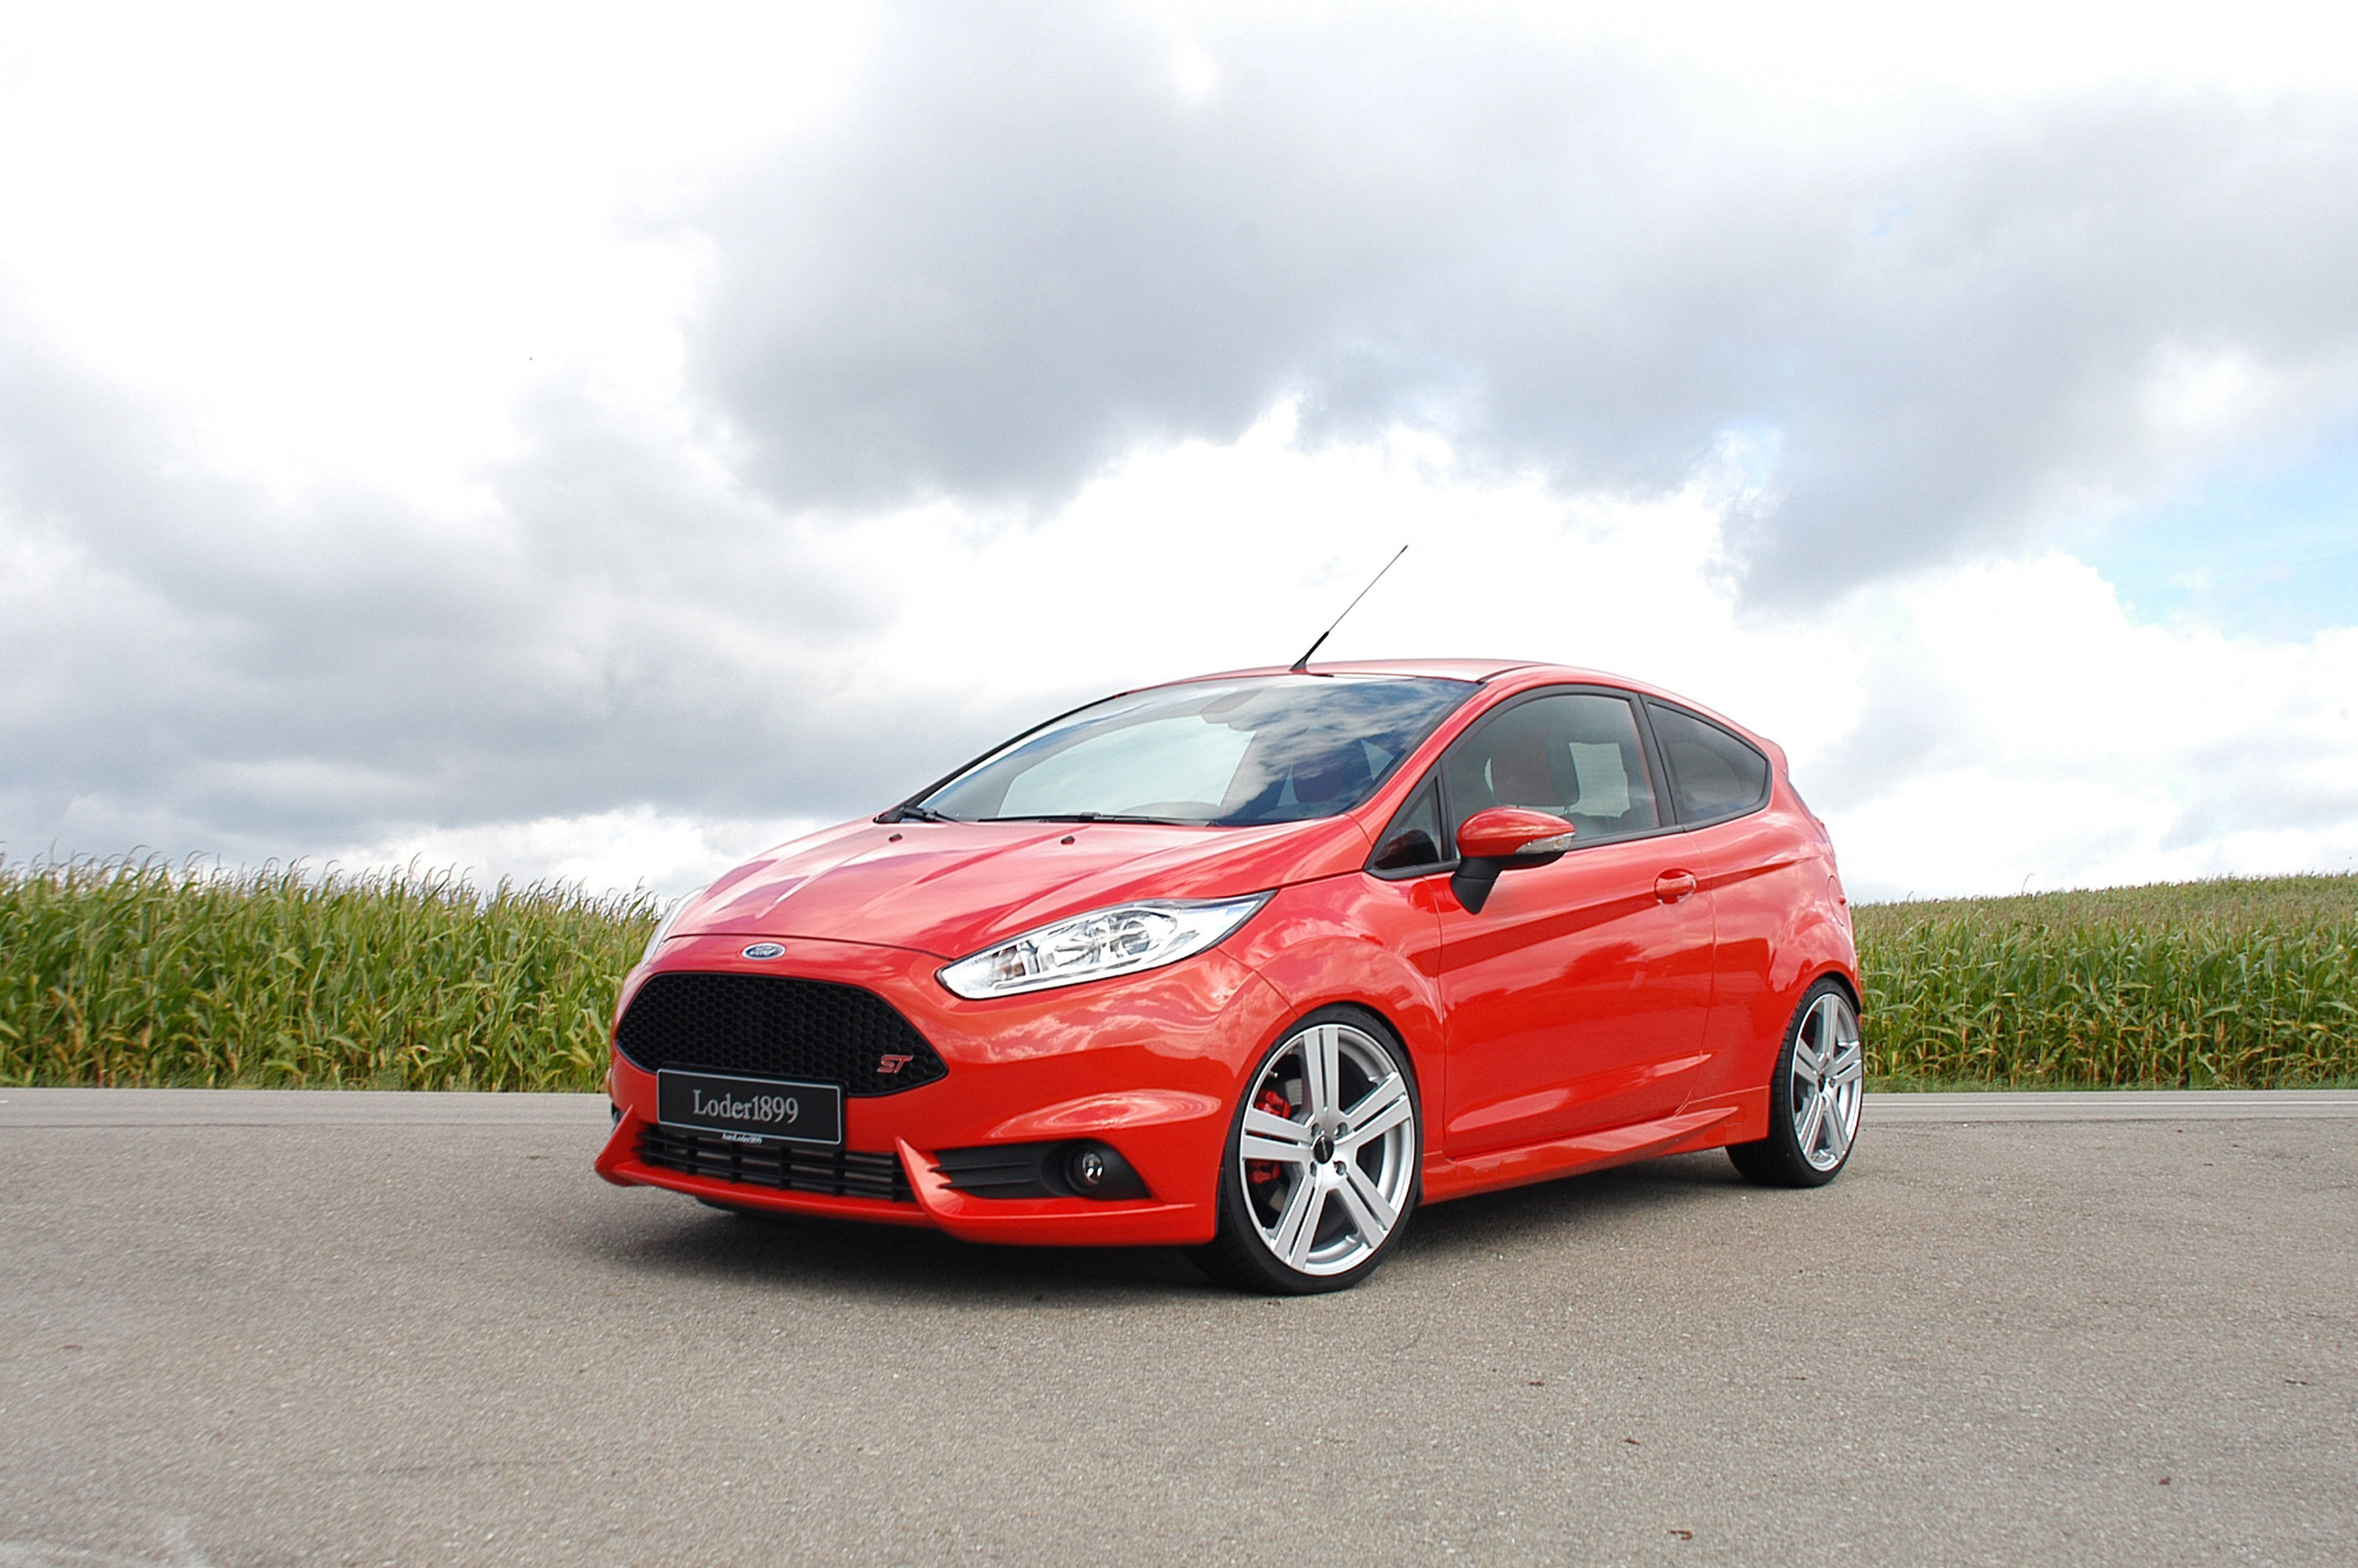 2013 loder1899 ford fiesta st tuning s t t wallpaper. Black Bedroom Furniture Sets. Home Design Ideas